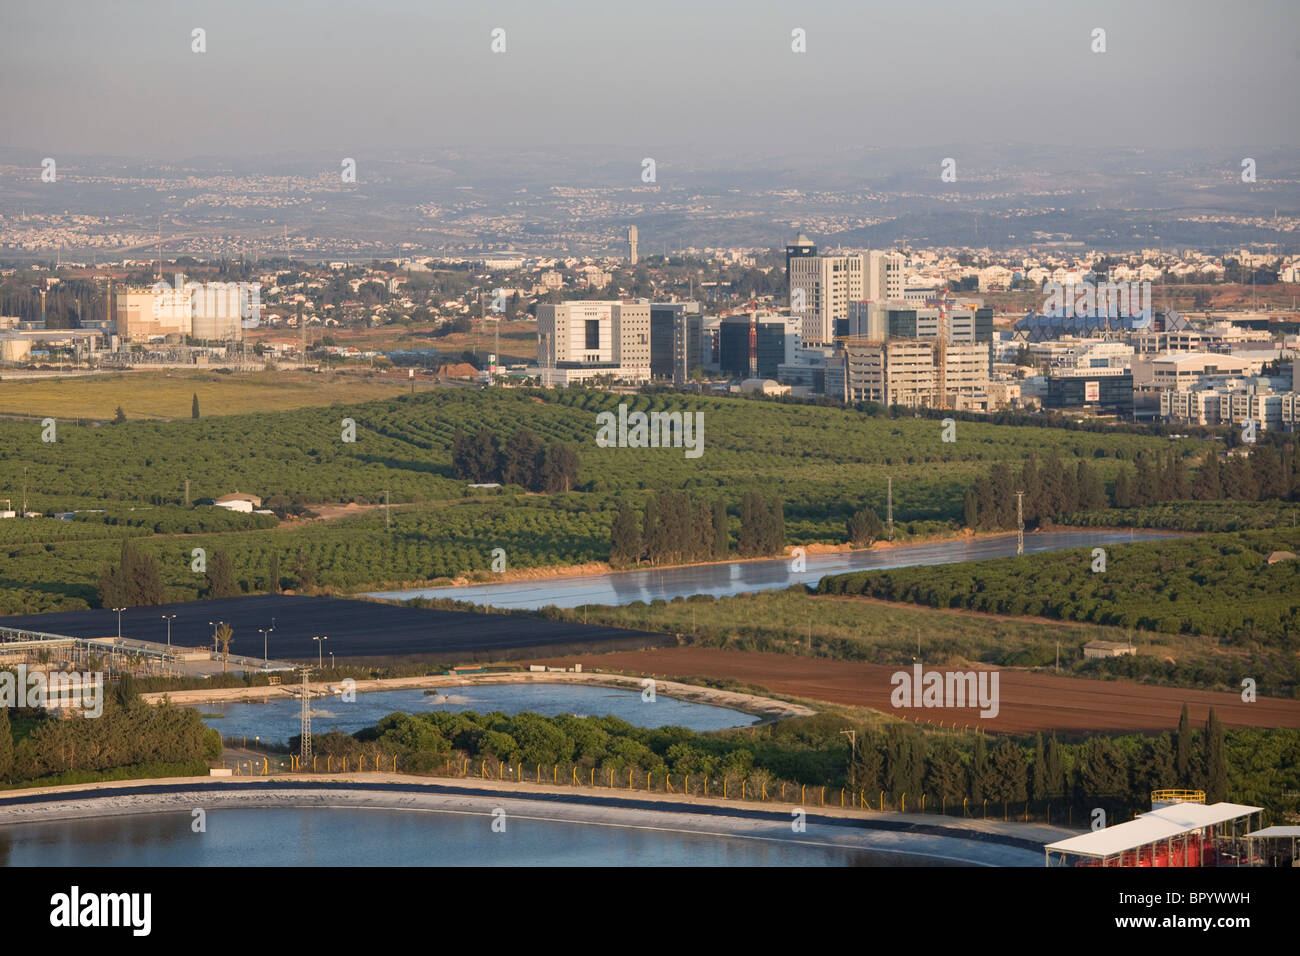 Aerial photograph of the Hi-Tech center of the city of Ra'anana in the Sharon - Stock Image